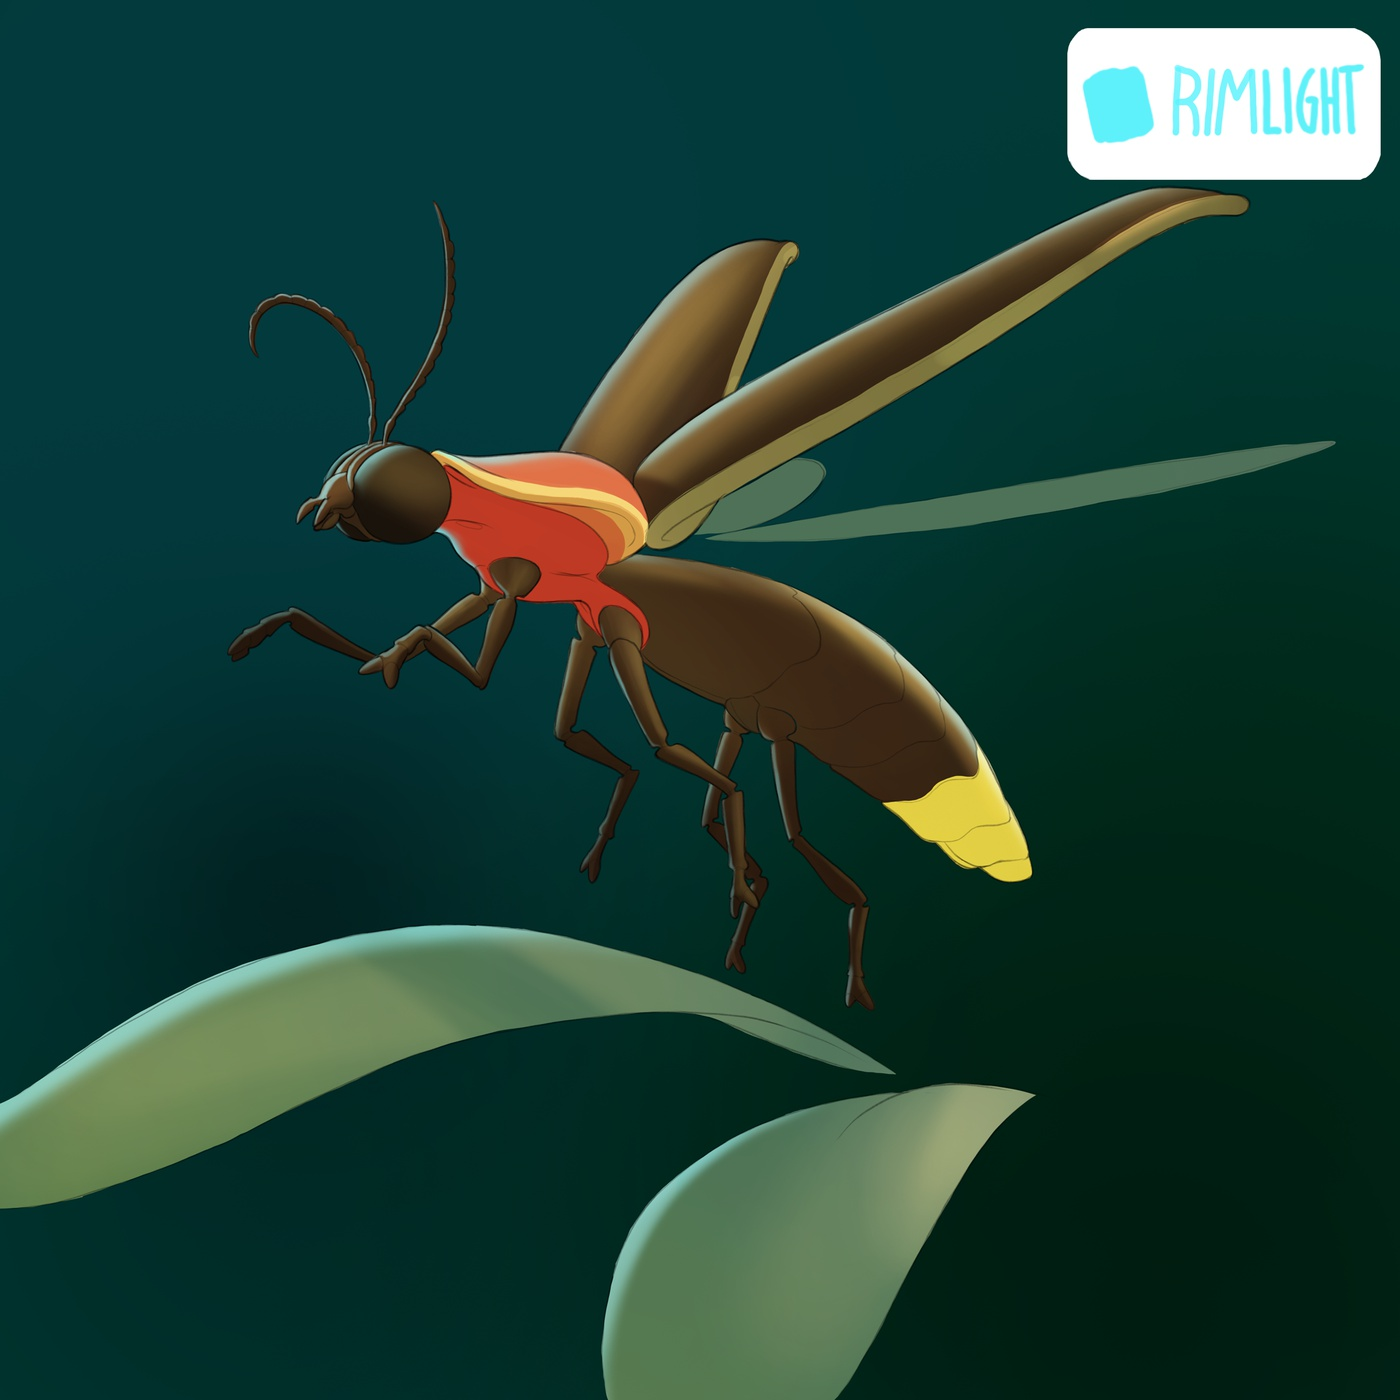 rimlight backlight glowing insect creature design model render glow effect photoshop